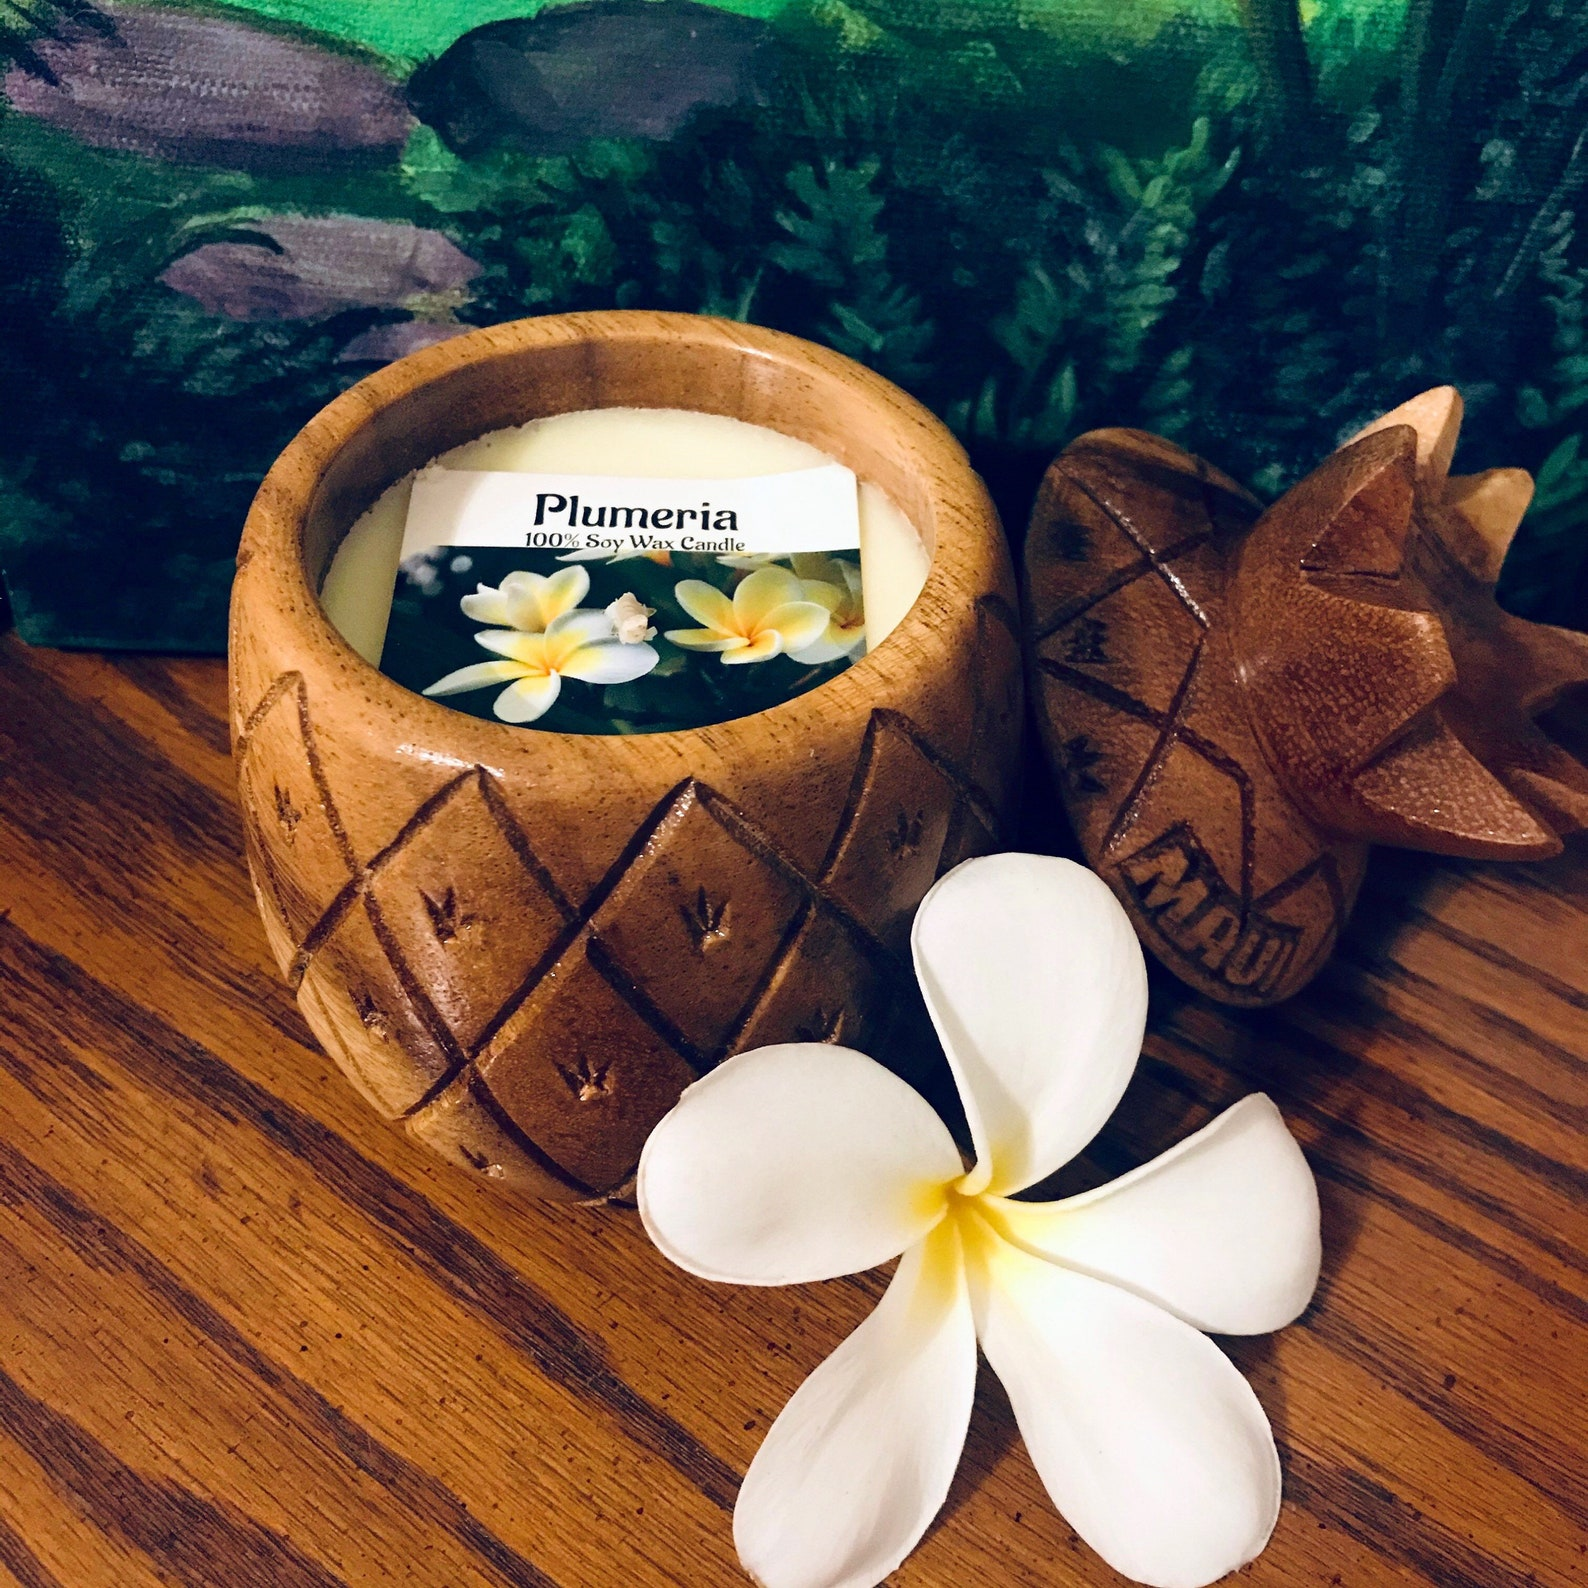 Plumeria-scented candle in a pineapple-shaped wooden bowl